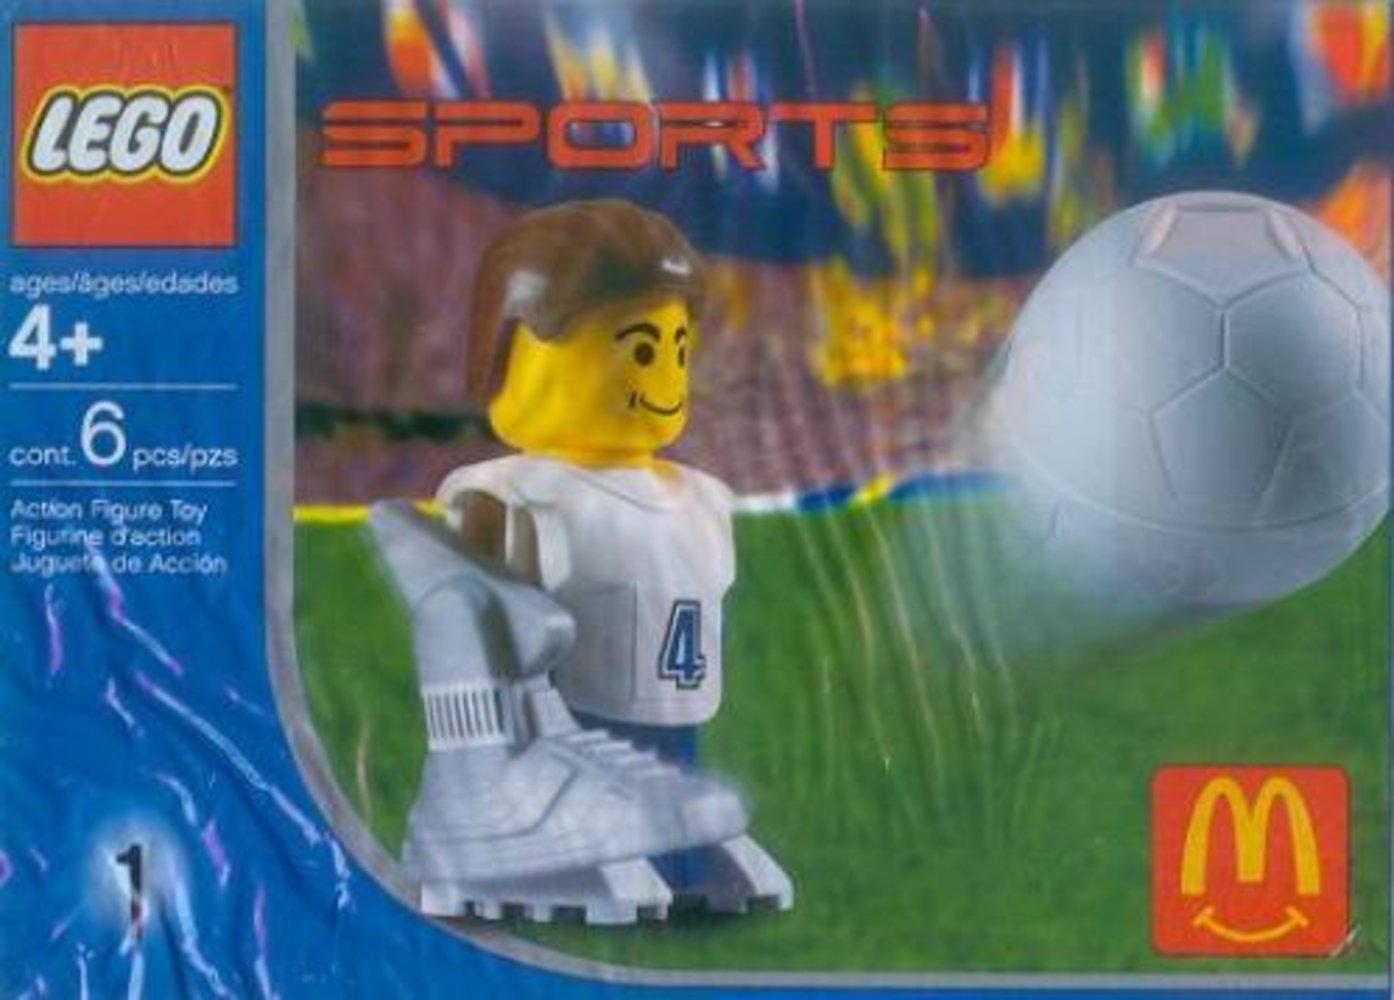 McDonald's Sports Set Number 1 - White Soccer Player #4